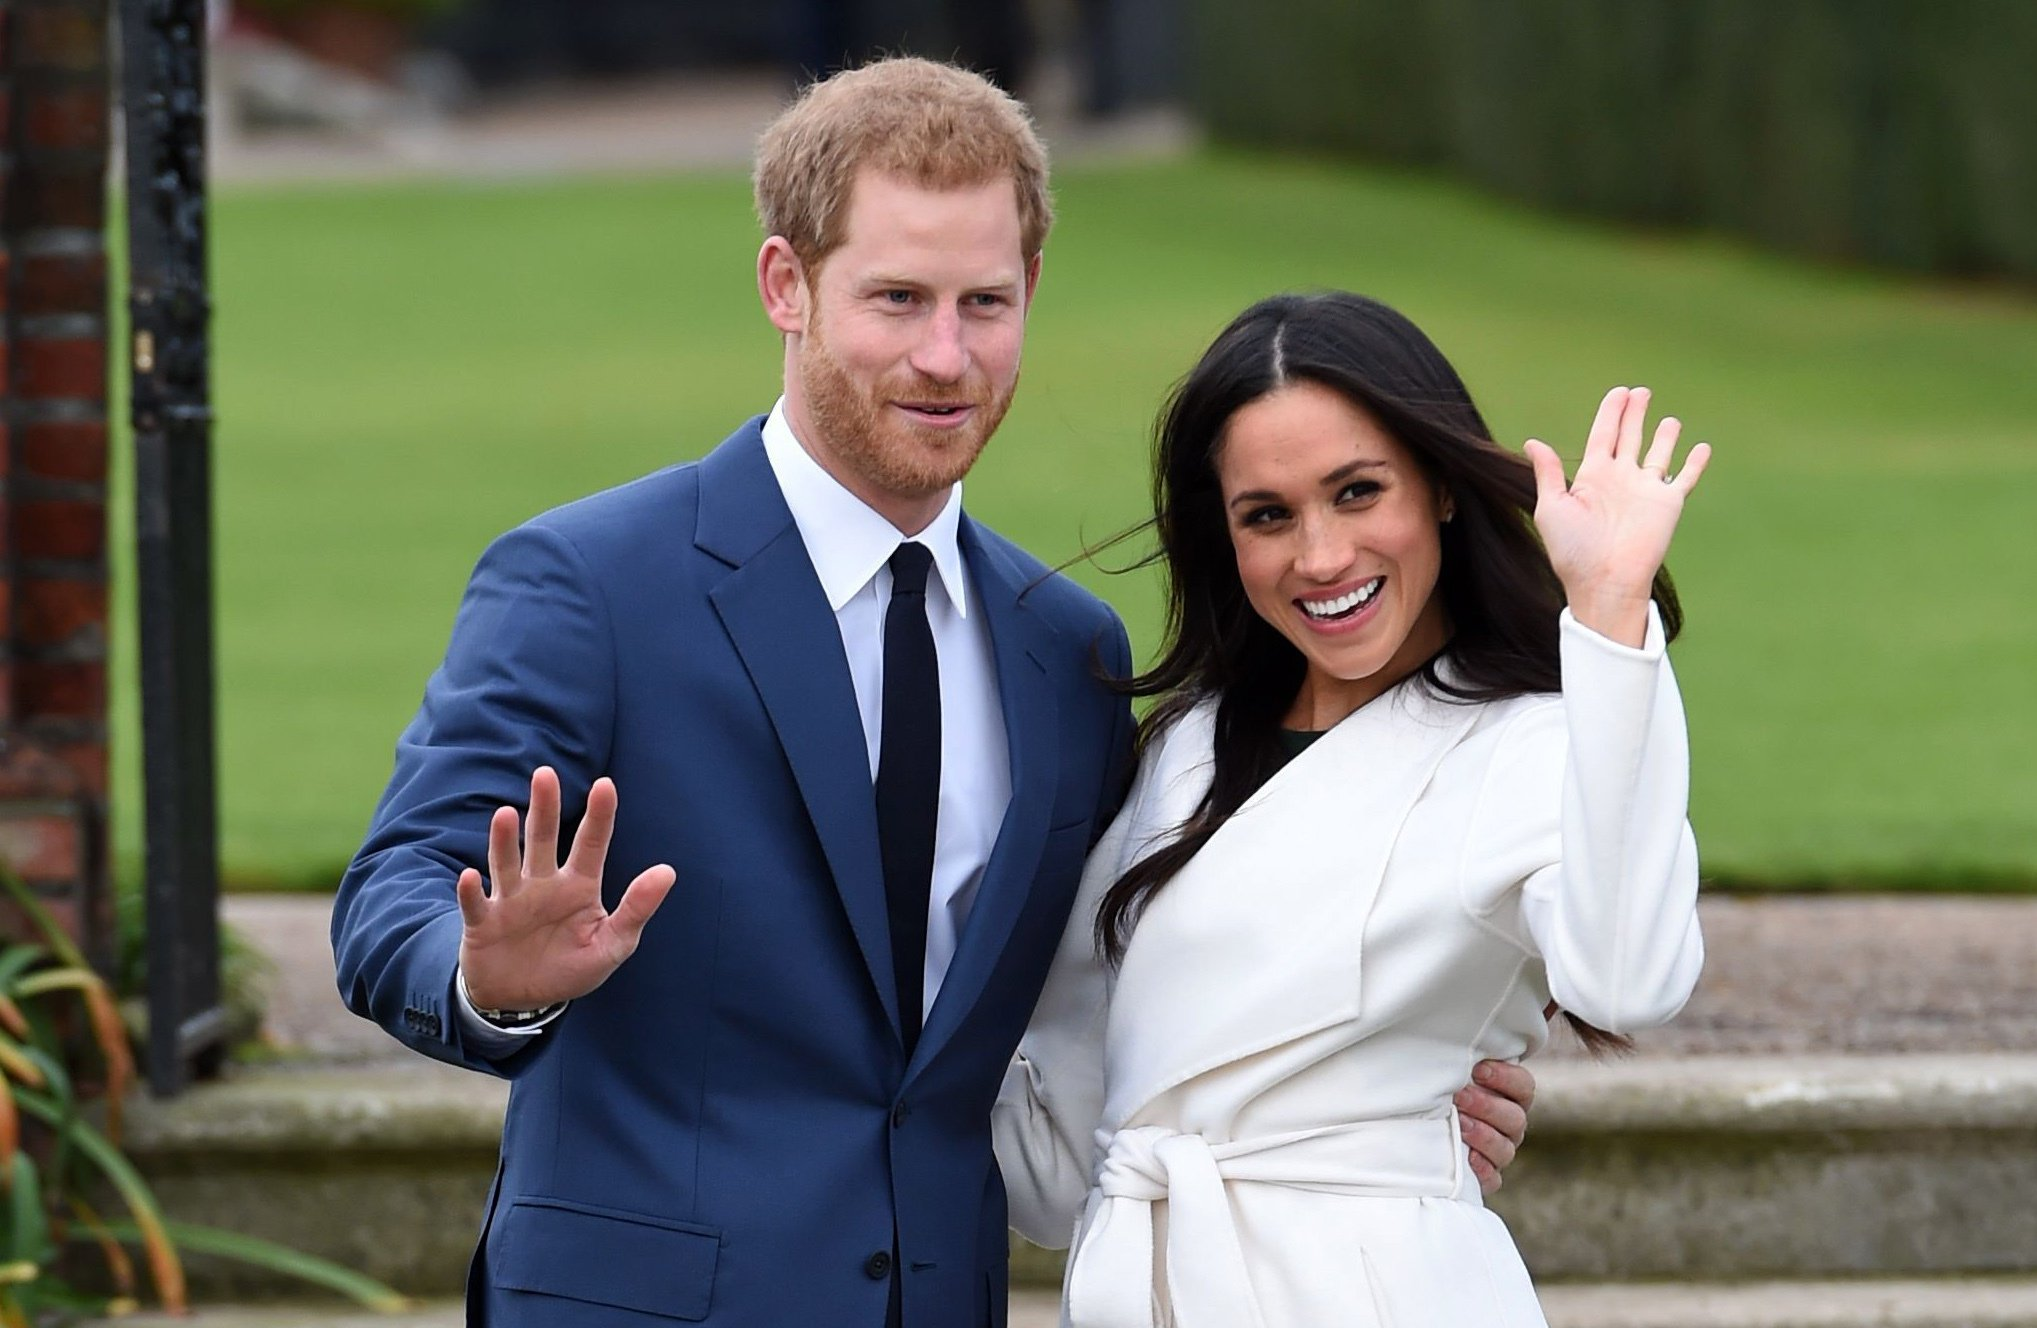 Prince Harry and Meghan Markle on the day they announced their engagement at Kensington Palace